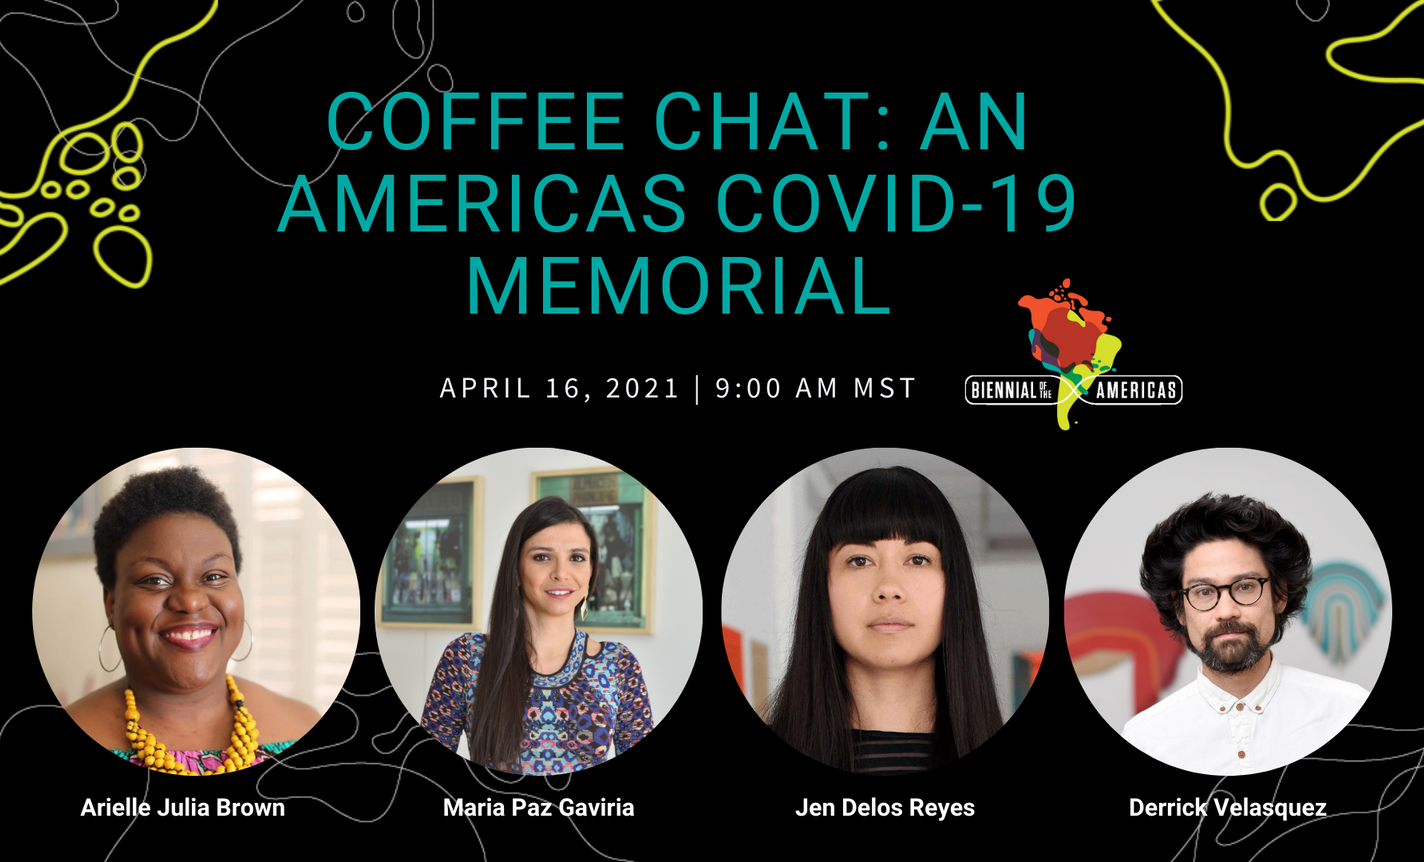 Coffee Chat: An Americas COVID-19 Memorial